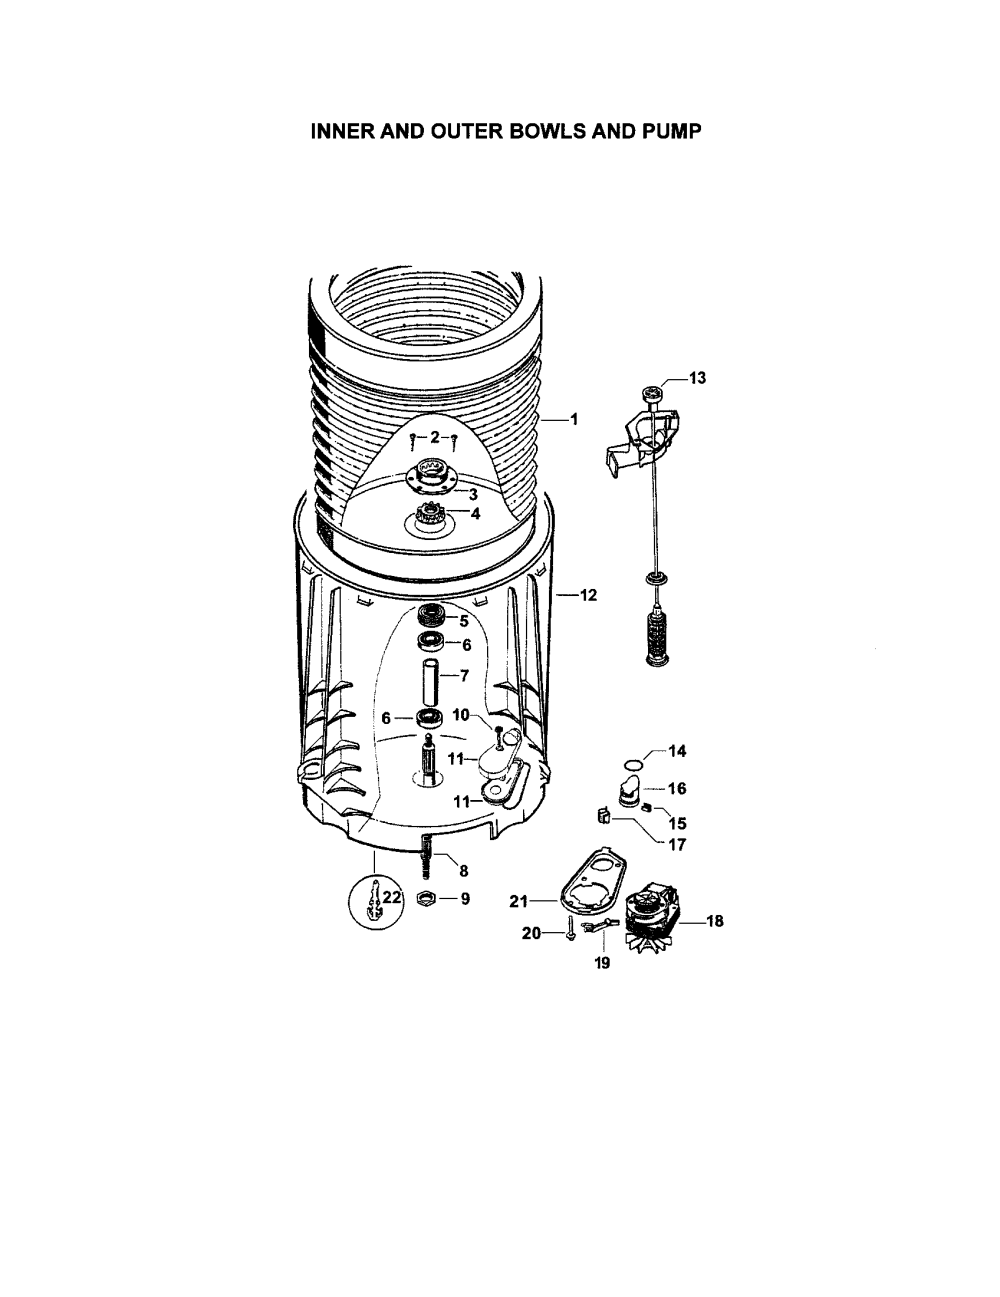 medium resolution of fisher paykel gwl11 96151 inner and outer bowls and pump diagram